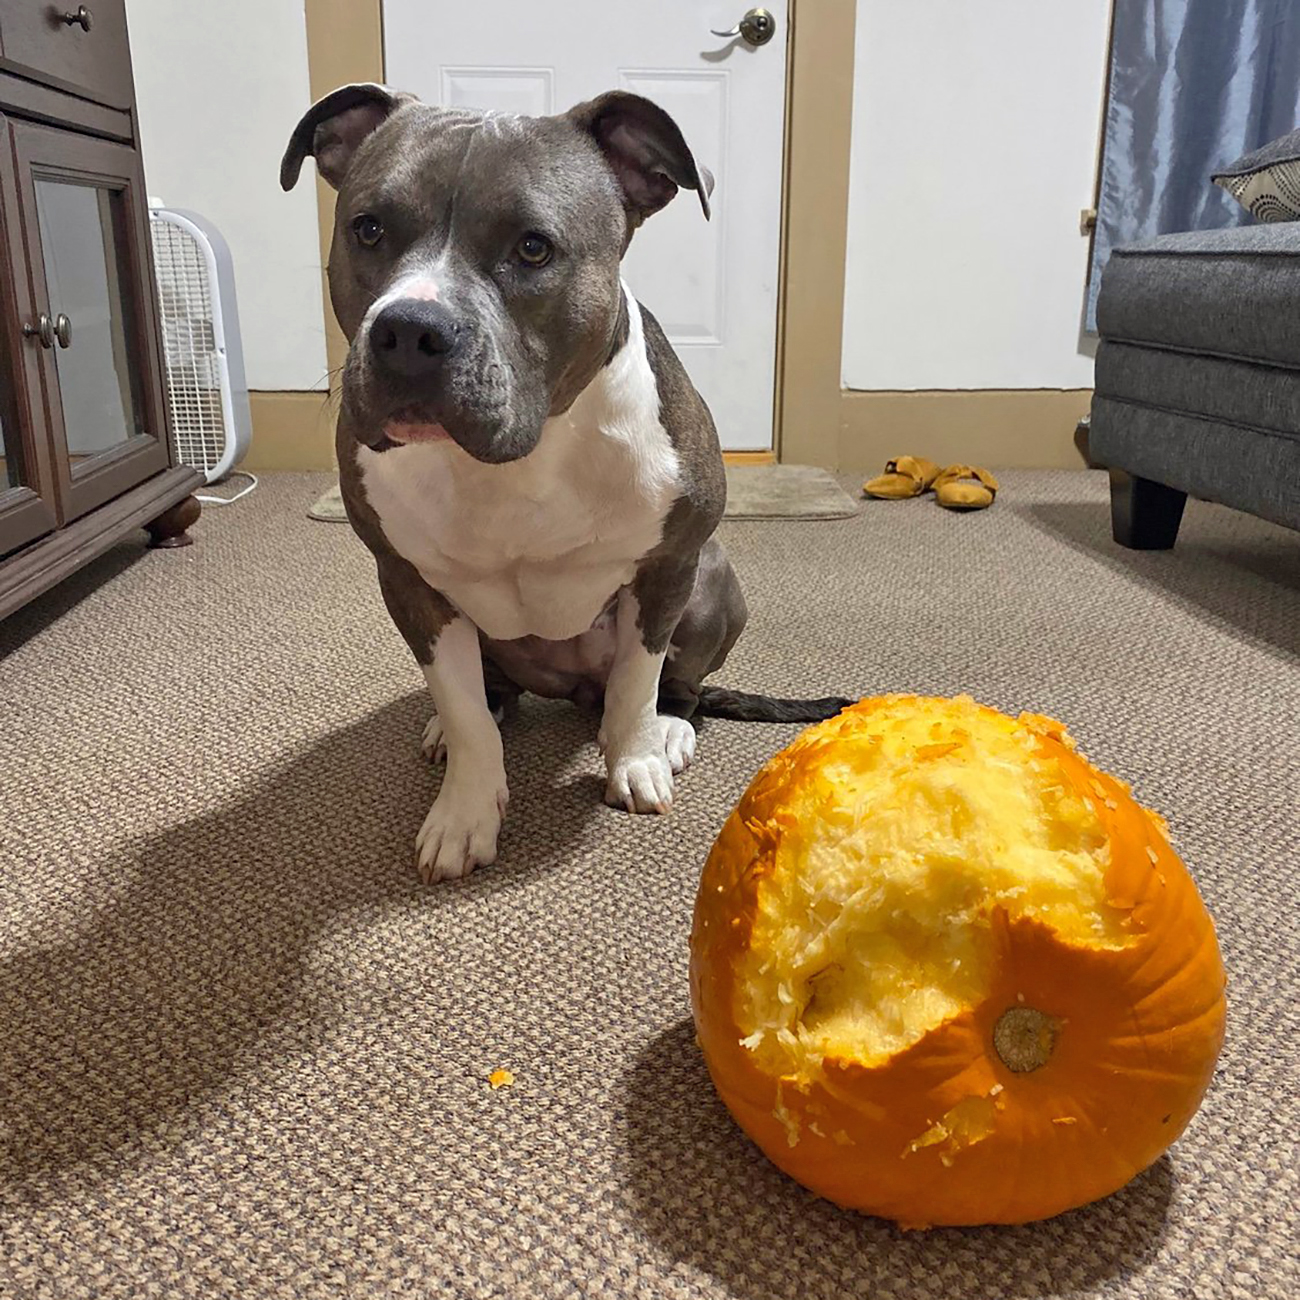 Medium-sized grey and white dog sits next to chewed up pumpkin